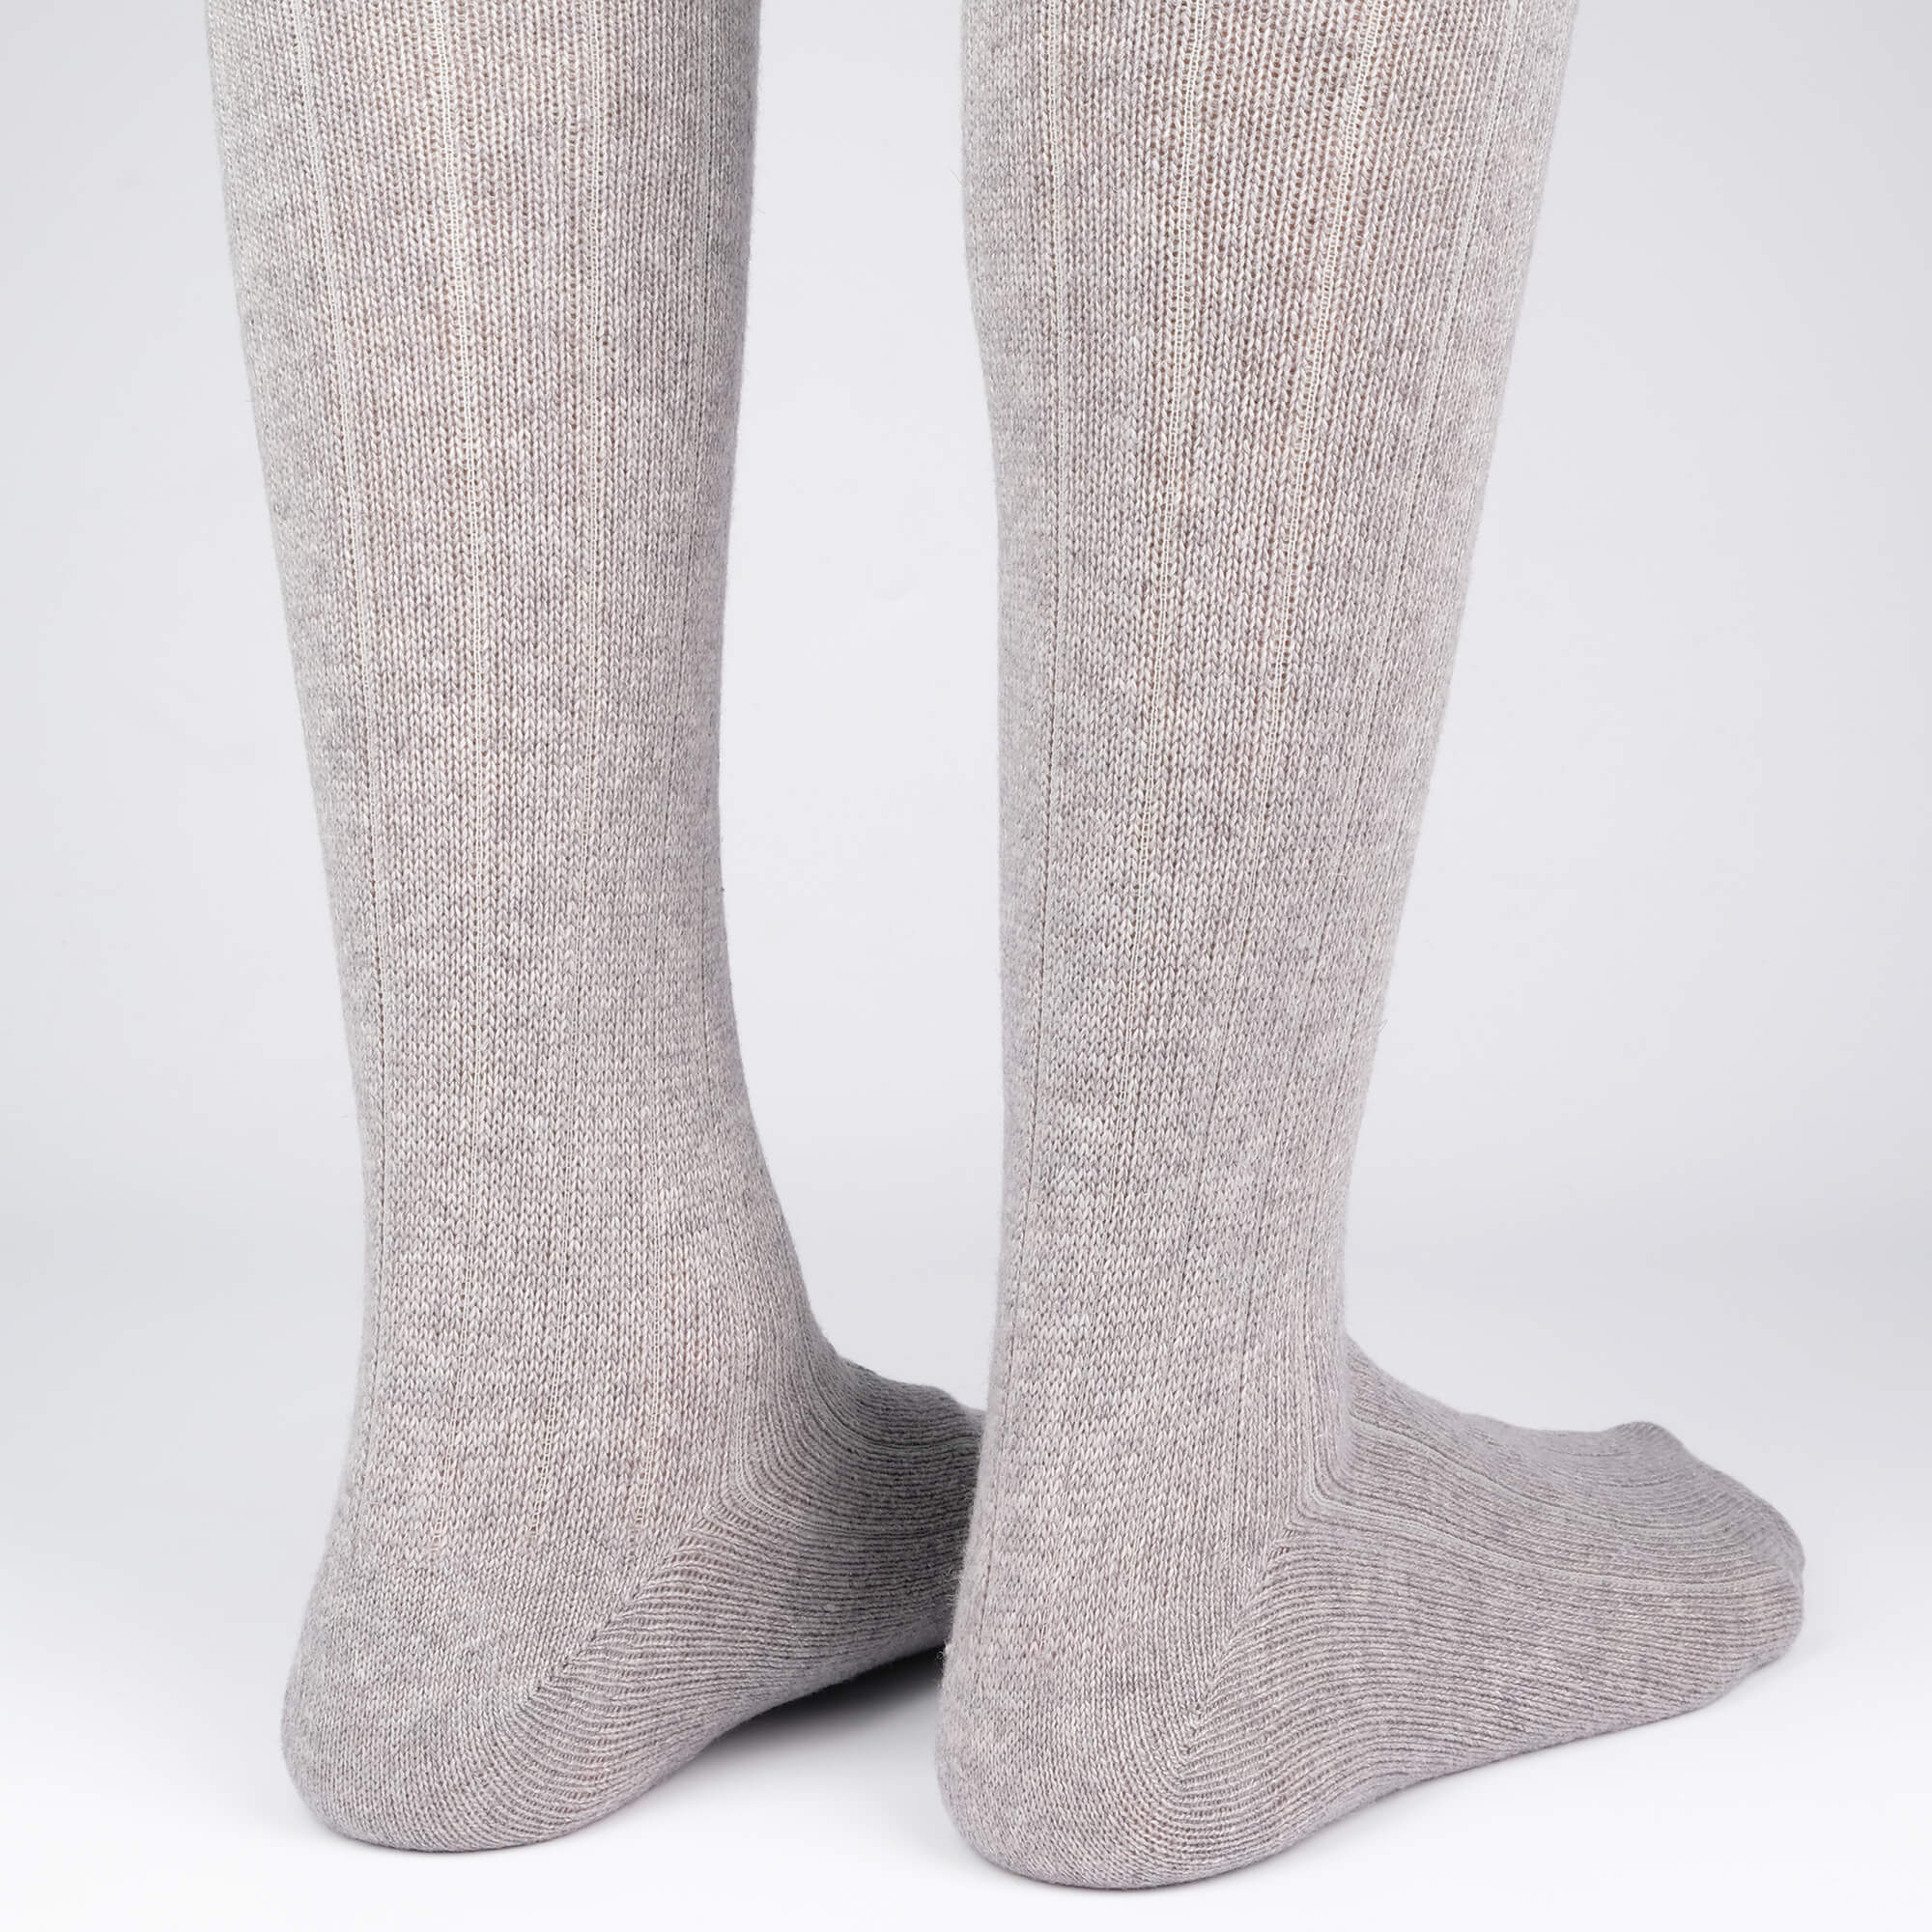 Mens Socks - Cashmere Knee High Ribbed Men's Socks - Grey⎪Etiquette Clothiers